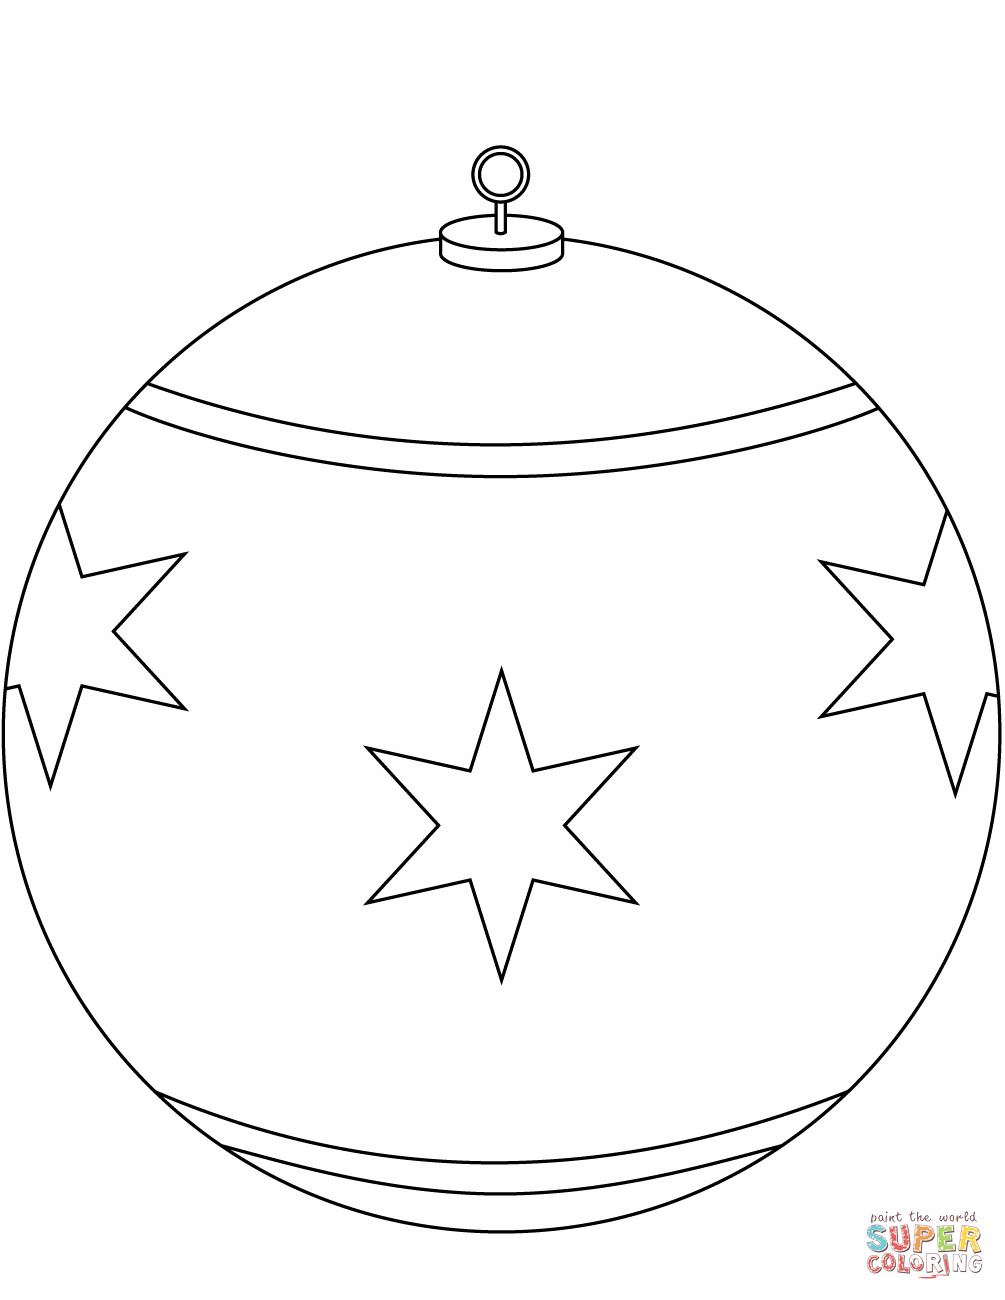 Christmas Ornament Coloring Pages Free At Getdrawings Com